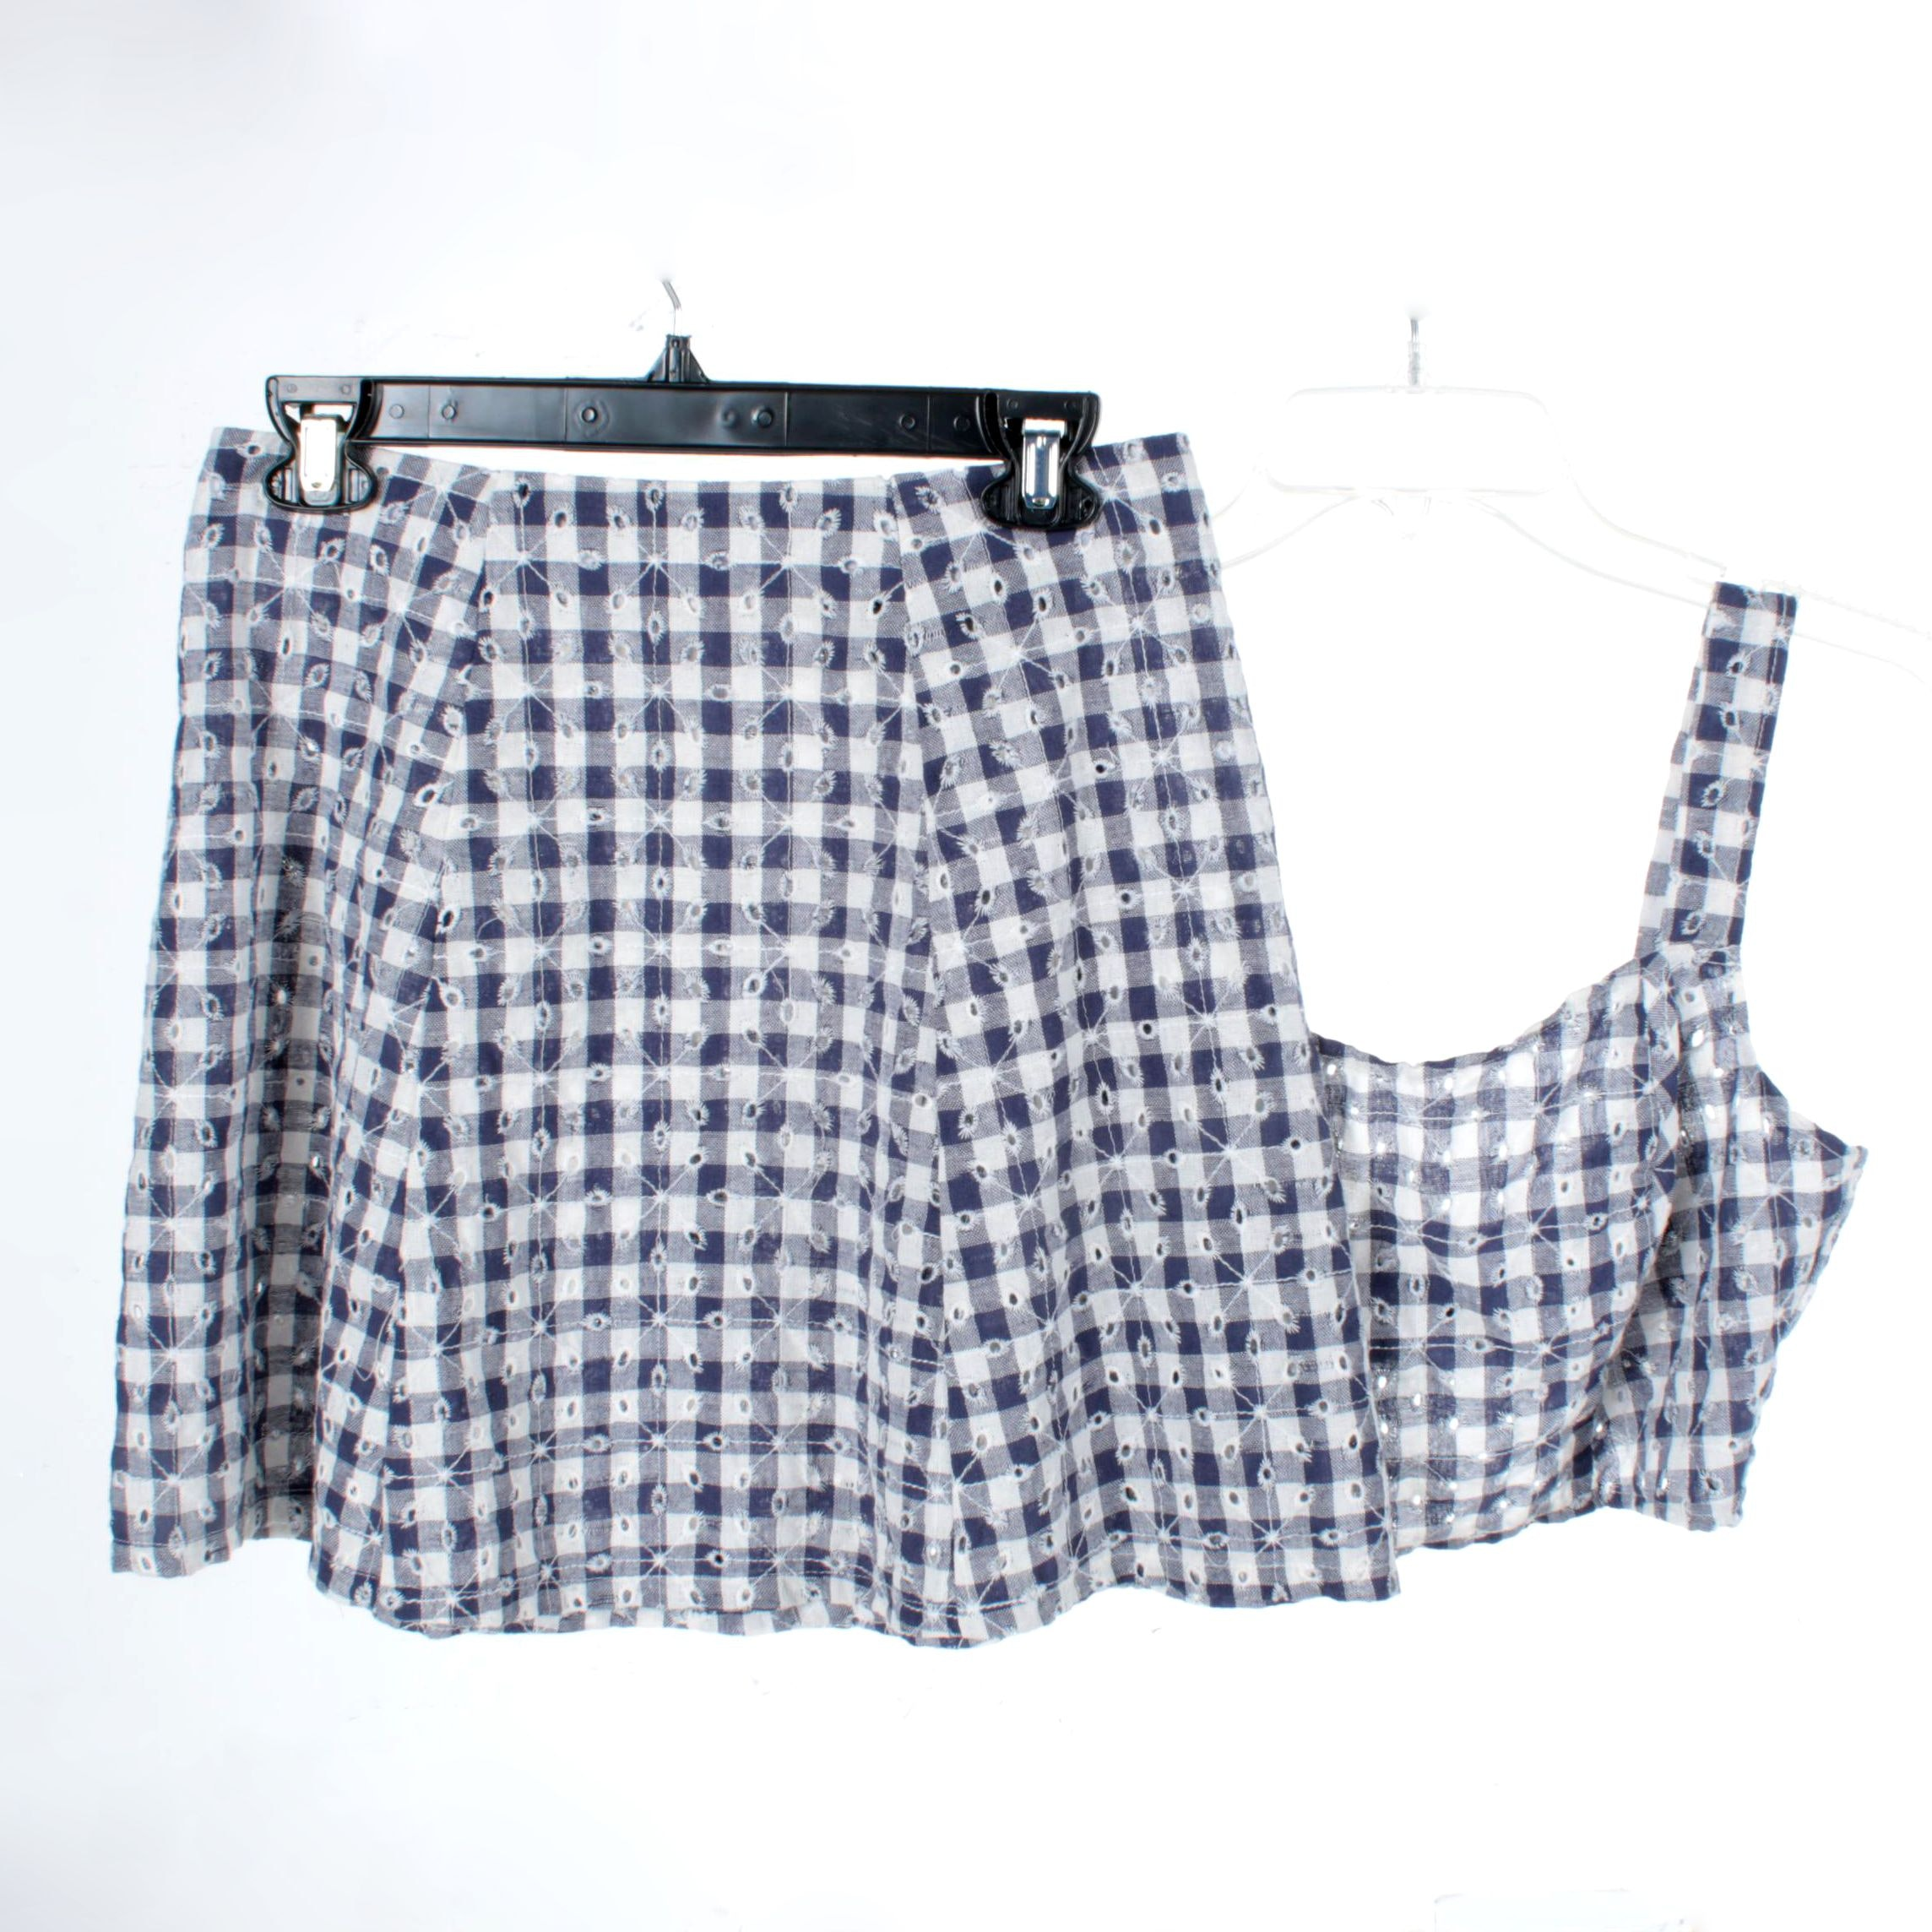 Women's Reformation Top and Skirt Set